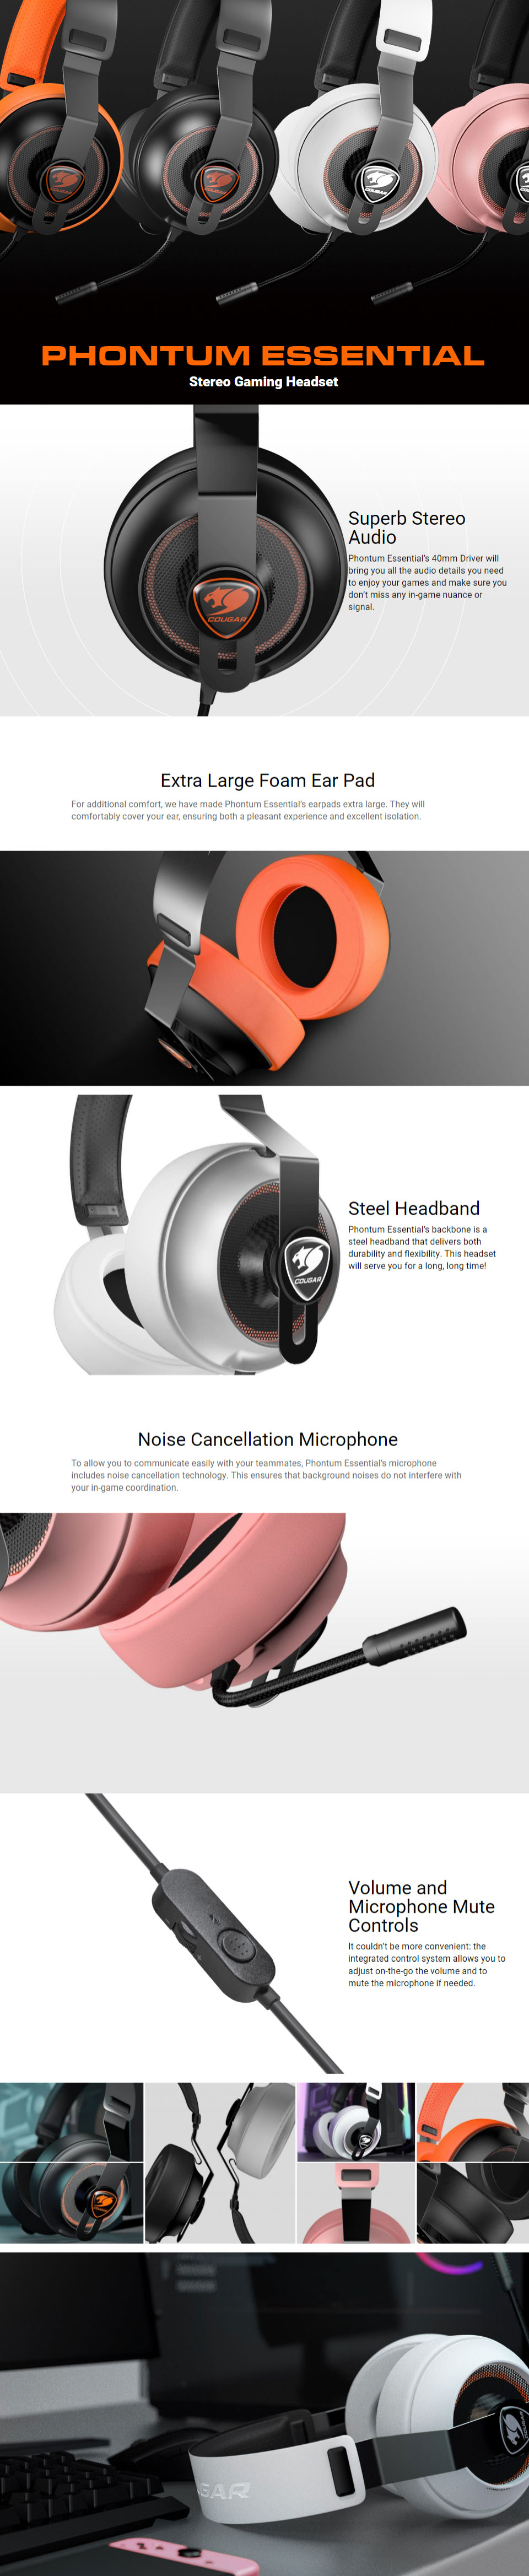 abb0bd7cfb9d Cougar Phontum Essential Stereo Gaming Headset Ivory  CGR-PHONTUM-E ...